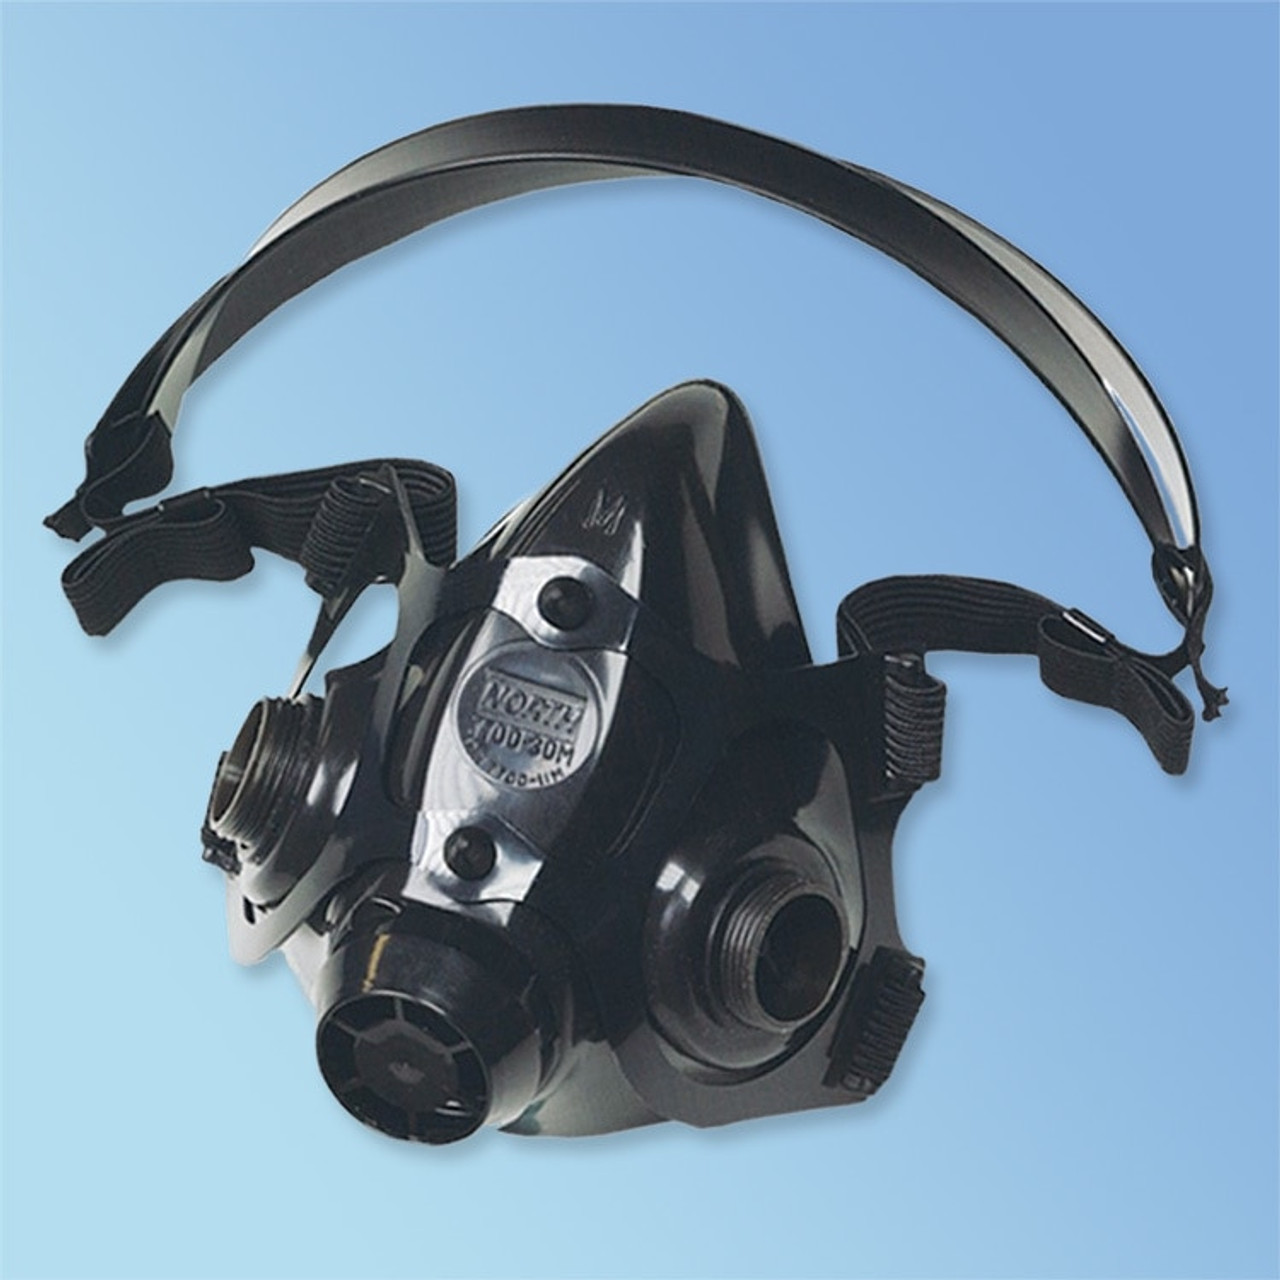 honeywell north n95 mask